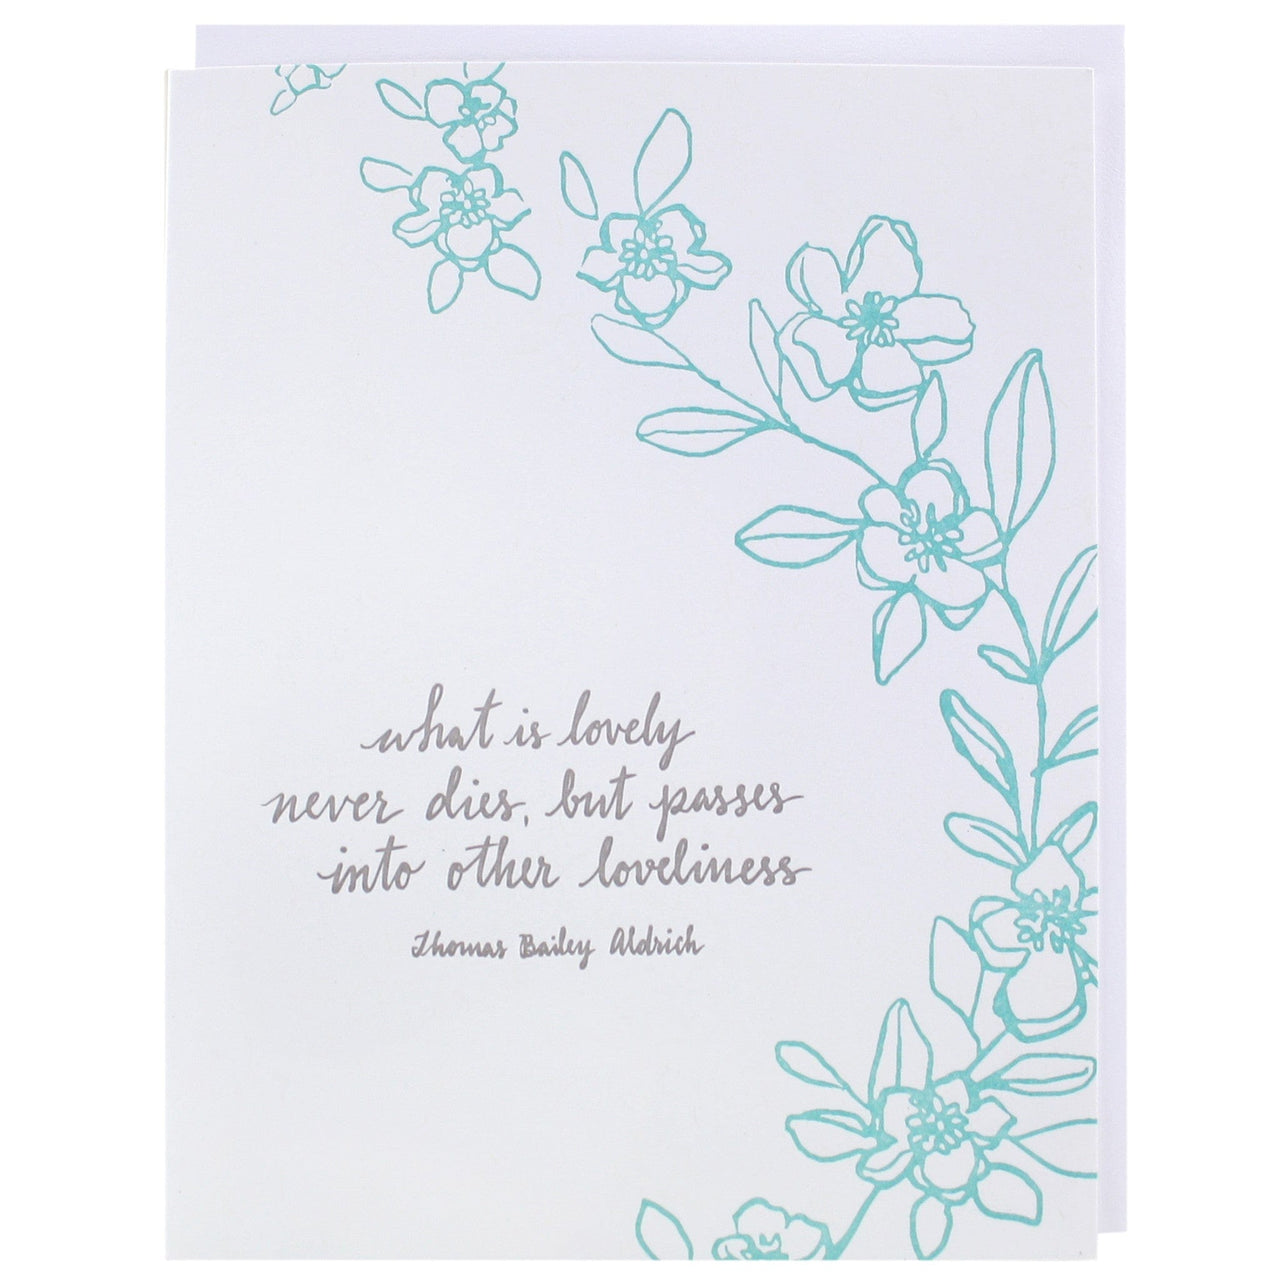 loveliness quote sympathy card - Sympathy Cards